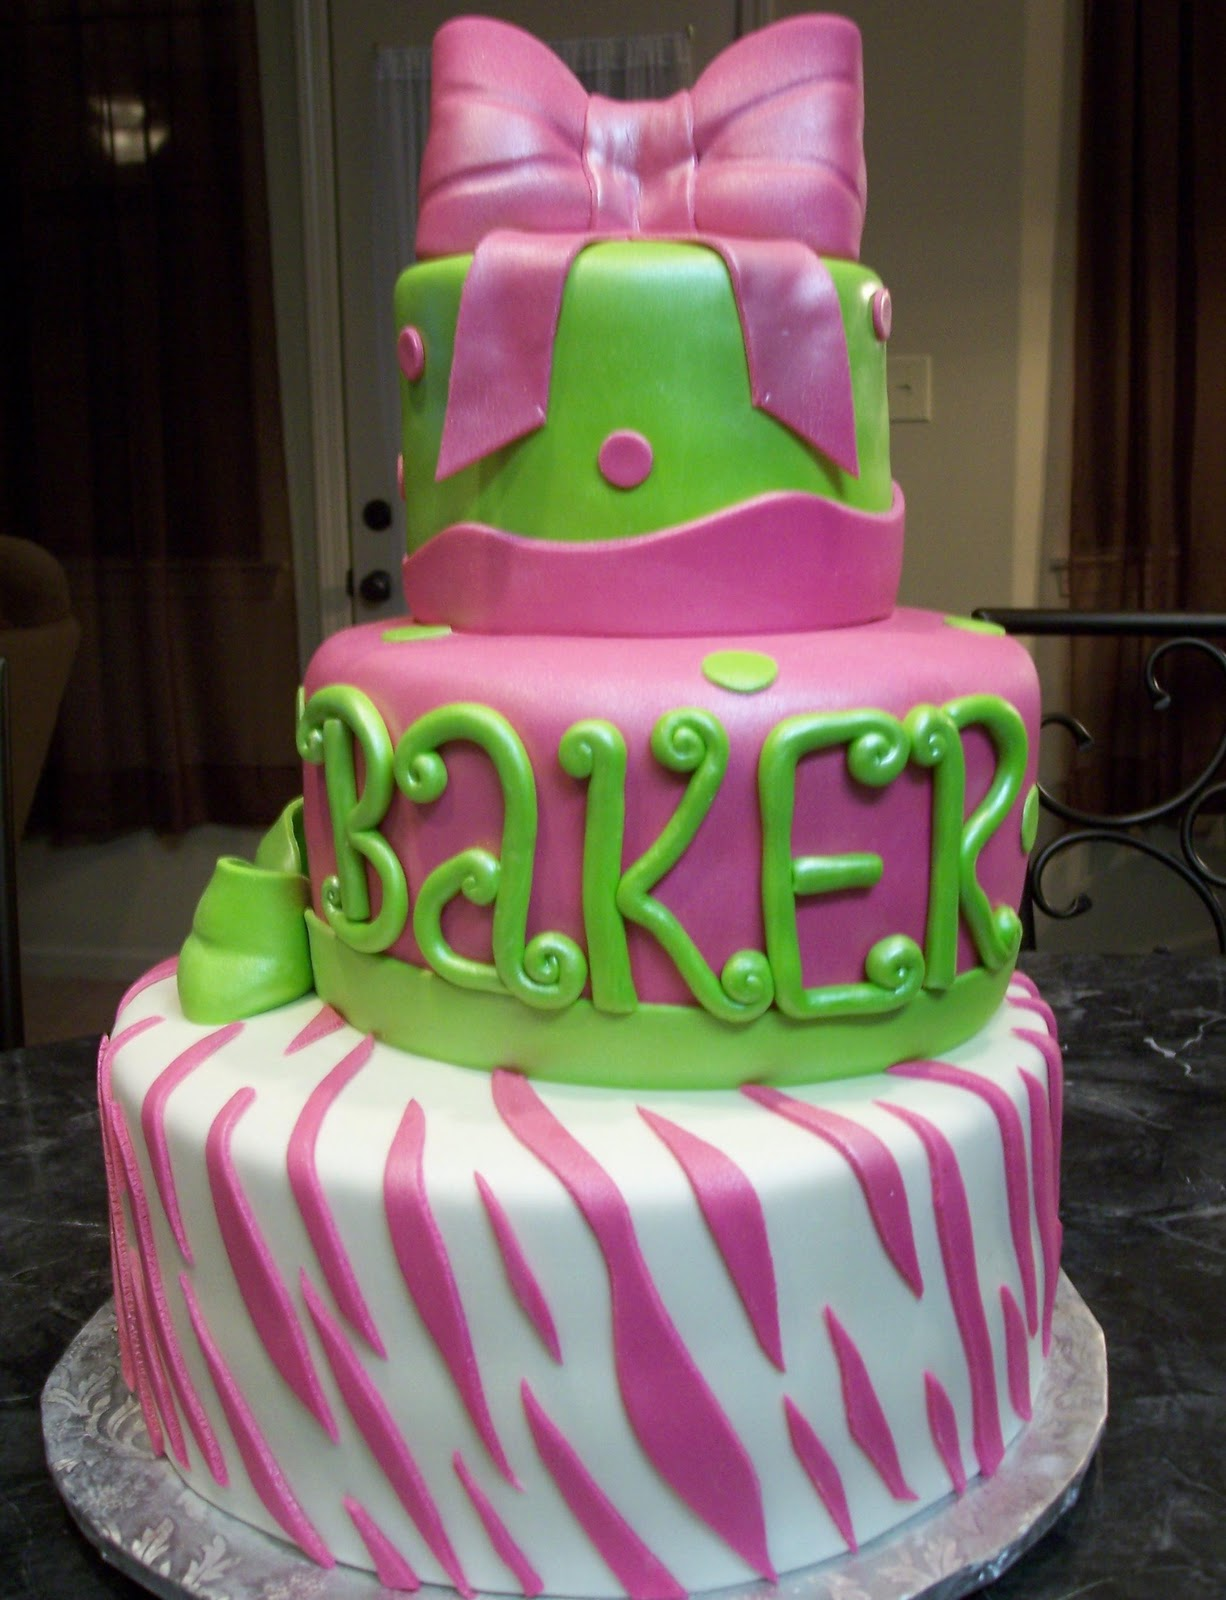 Green Zebra Cake http://mymonicakes.blogspot.com/2010/12/hot-pink-and-lime-green-zebra-print.html